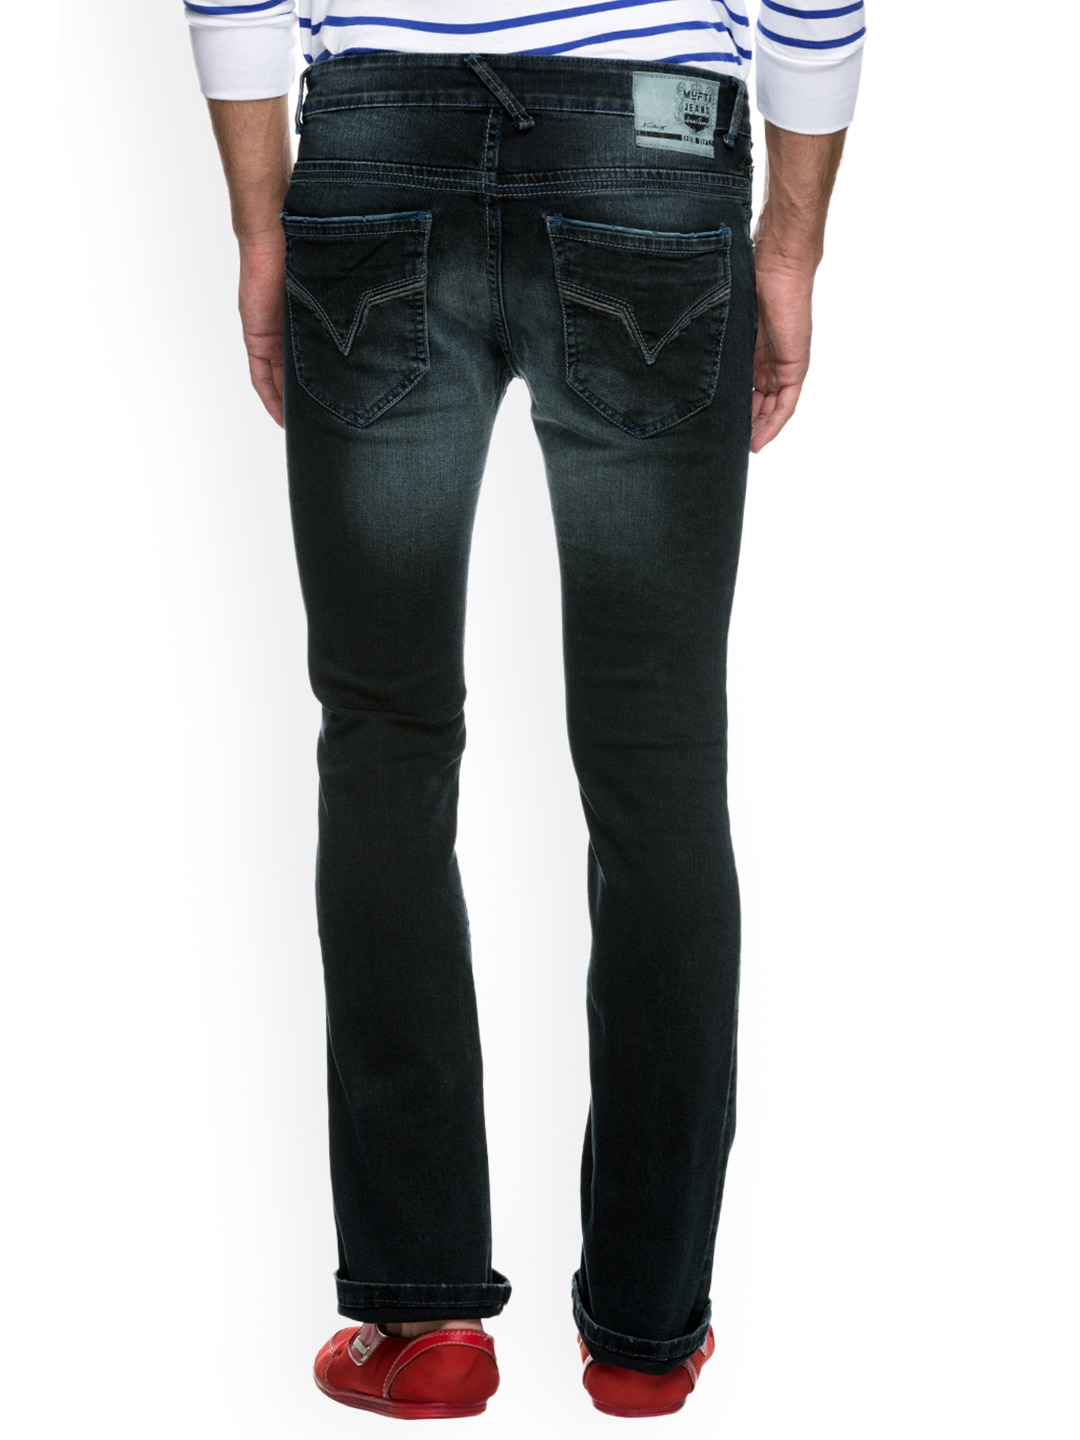 Find great deals on eBay for mens jeans bootcut. Shop with confidence.